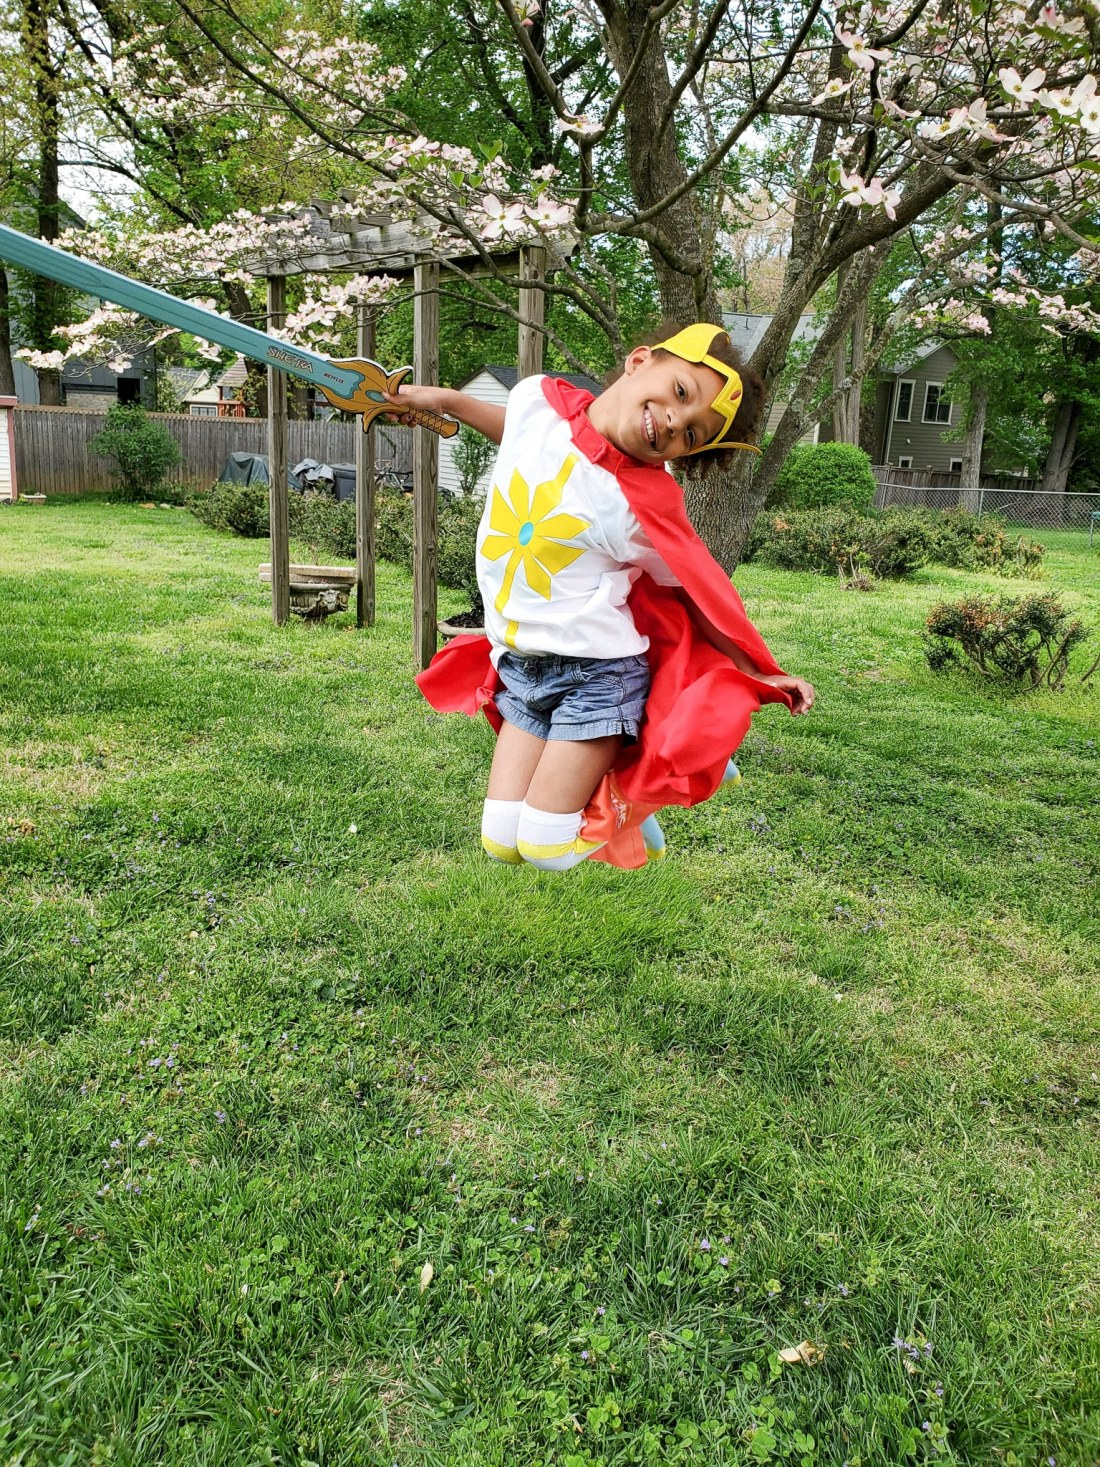 Esuun Jumping She Ra Season 2 Costume. Mark your calendars because on April 26th DreamWorks She-Ra and the Princesses of Power is roaring back to Netflix for the Honor of Grayskull. The series creator promises there will be cool new characters and story lines that didn't make it into the first season of She-Ra.